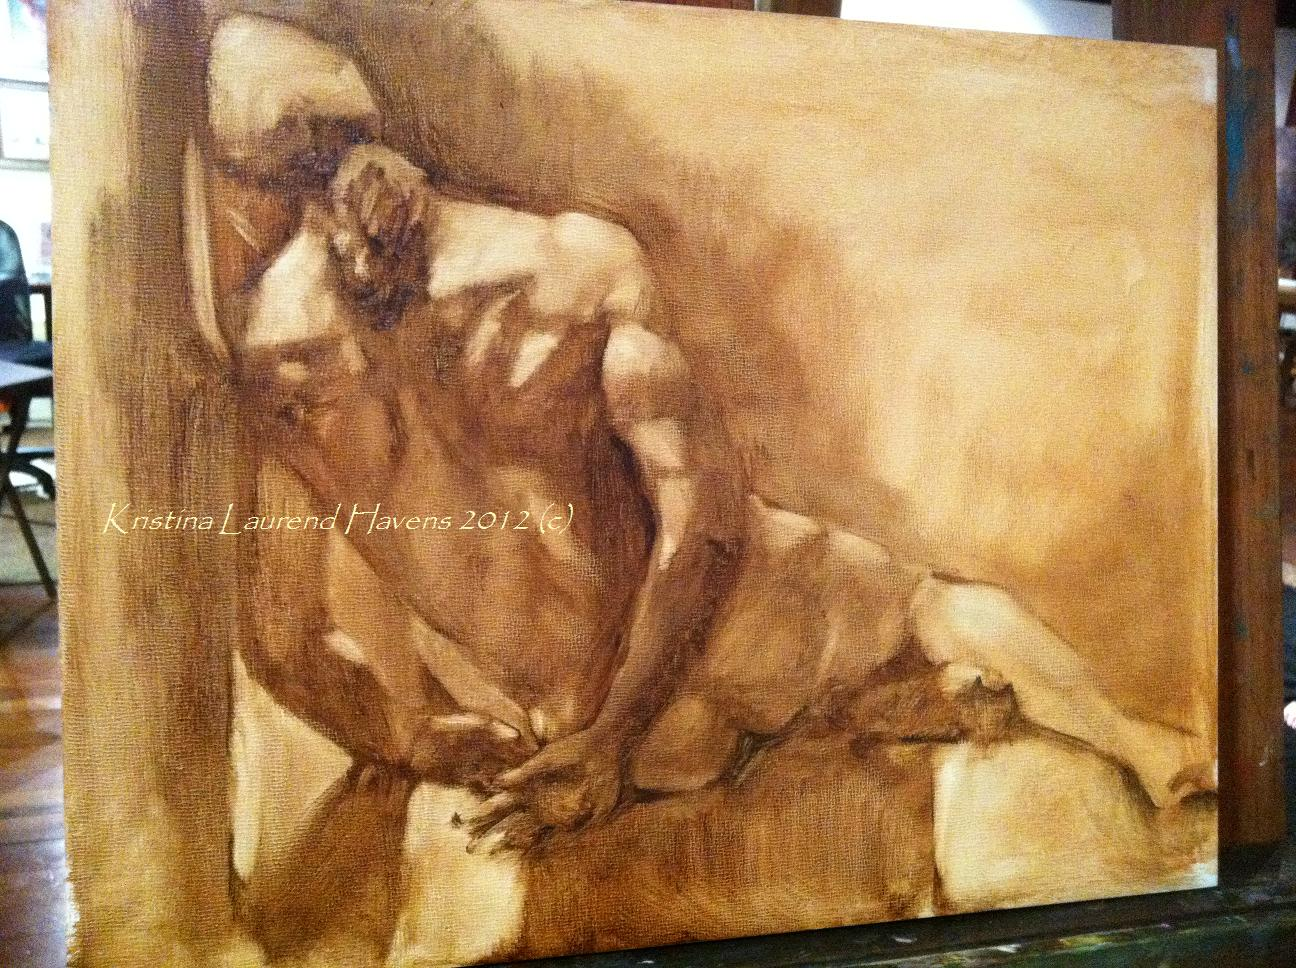 male+nude+back+sepia+painting ... the Lions Den Adult business establishment located at 25965 Highway 17, ...